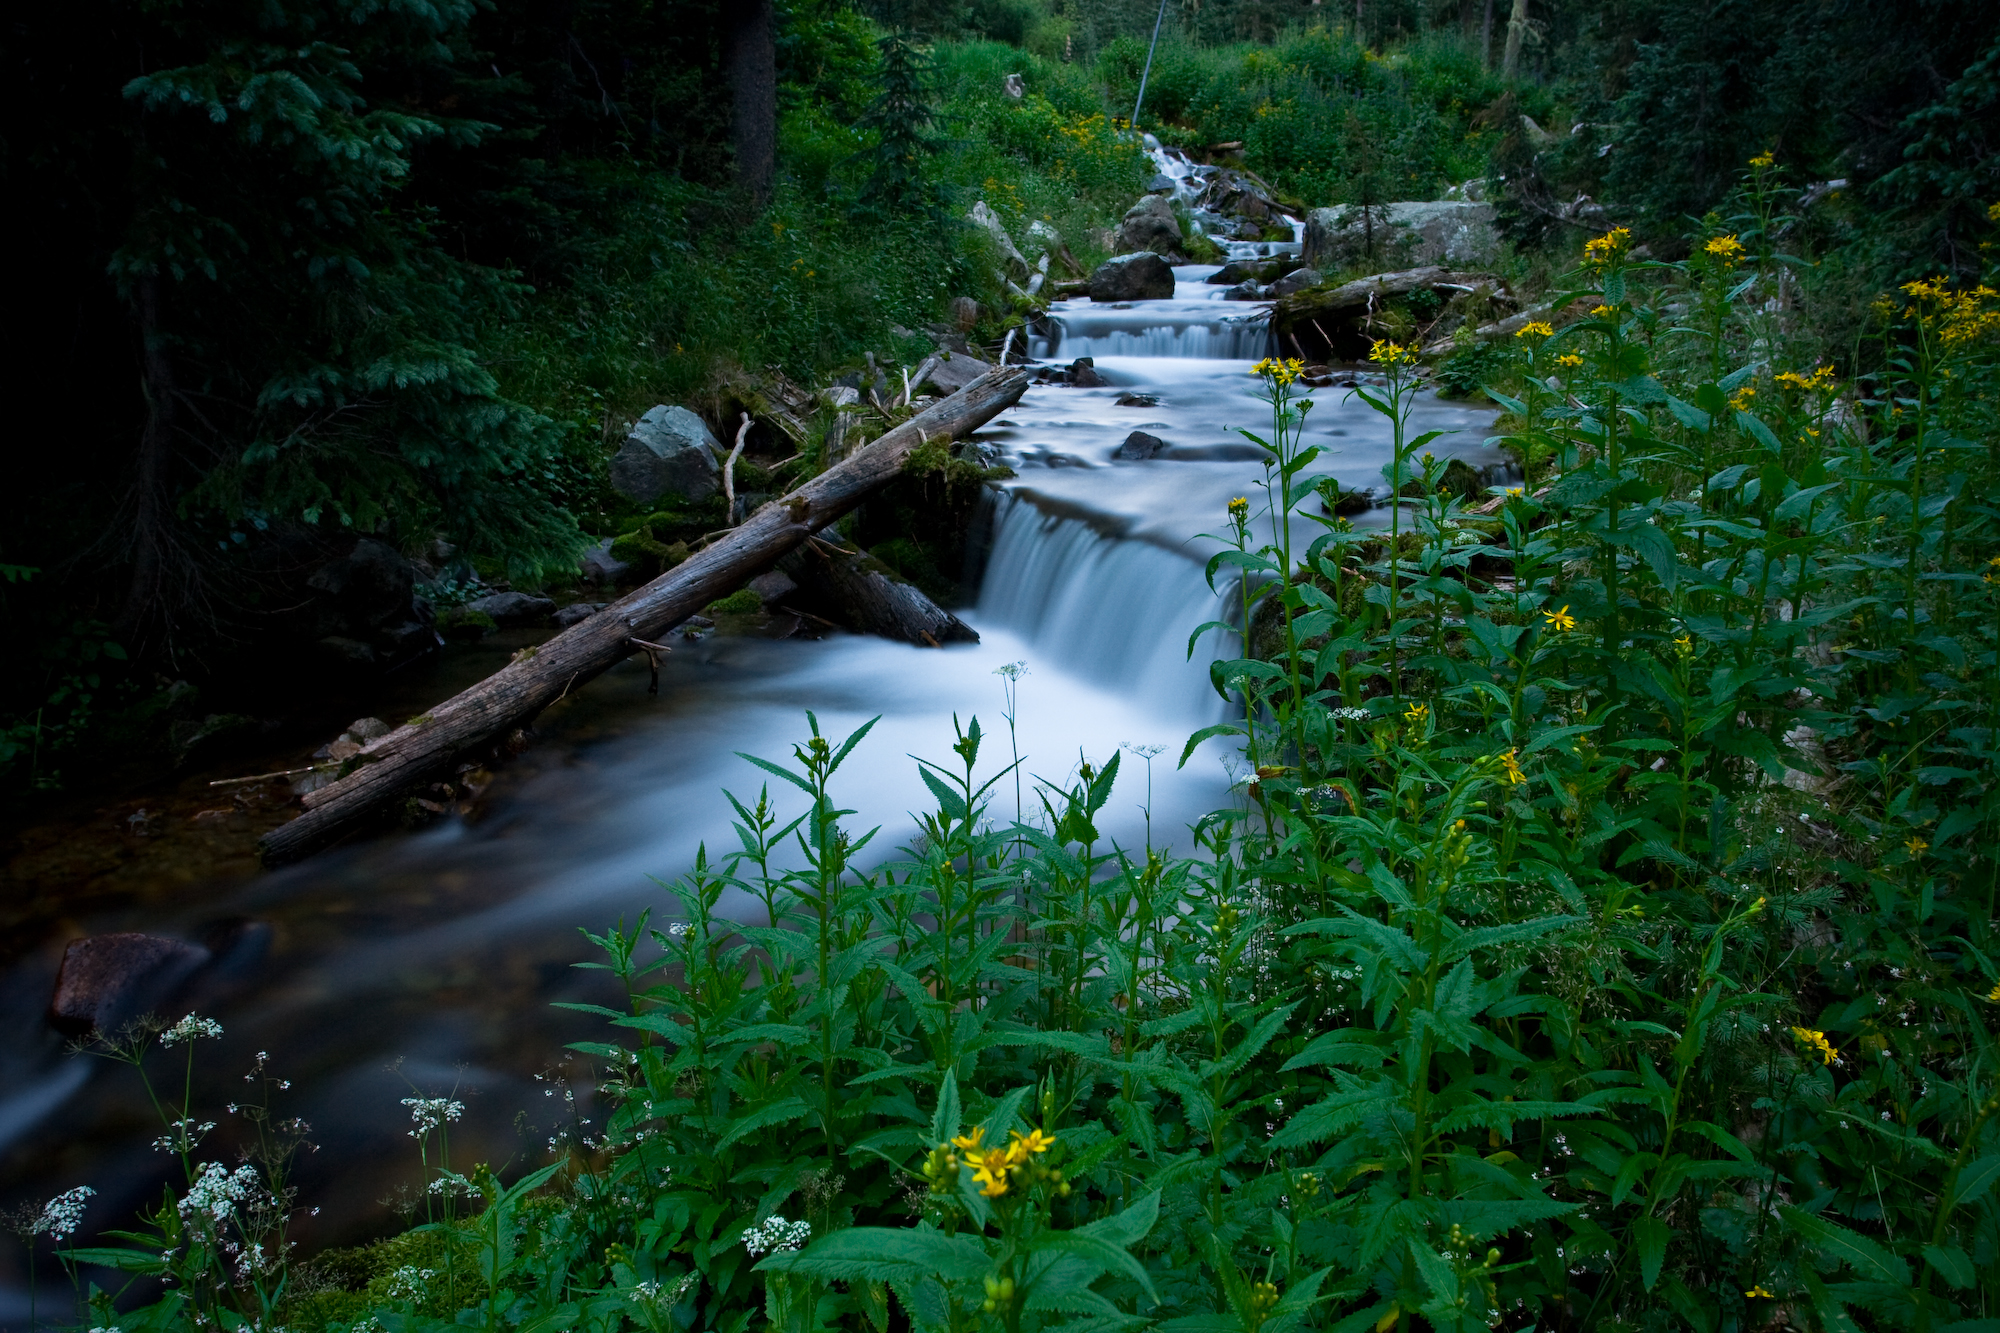 Art of Motion, Blue, Water, Vegetation, Valley, HQ Photo